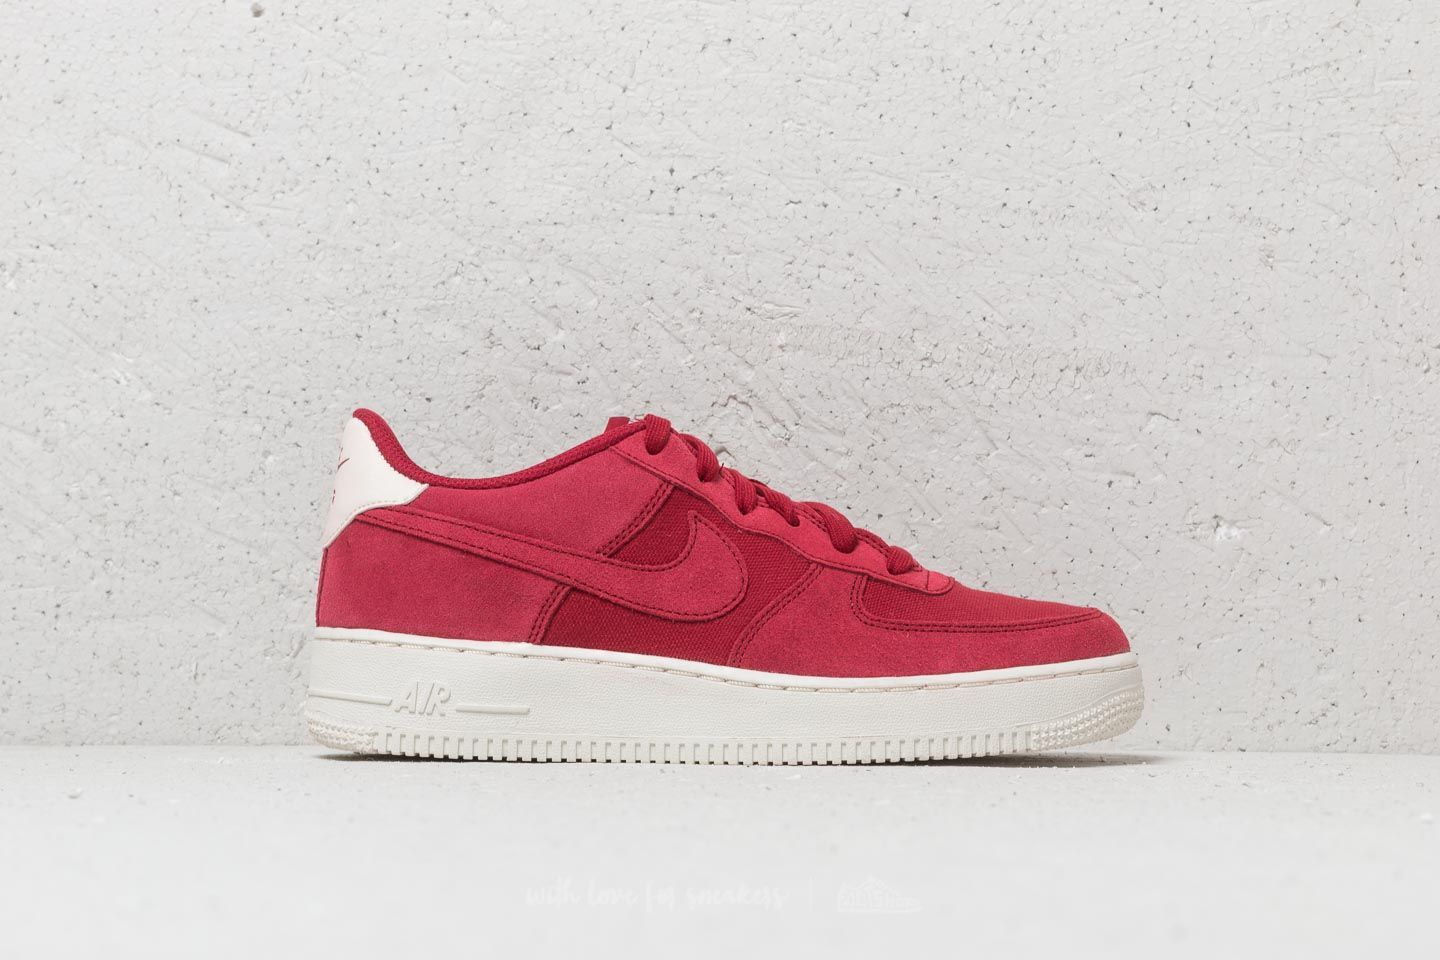 nike AIR FORCE 1 '07 SUEDE RED CRUSHRED CRUSH SAIL bei